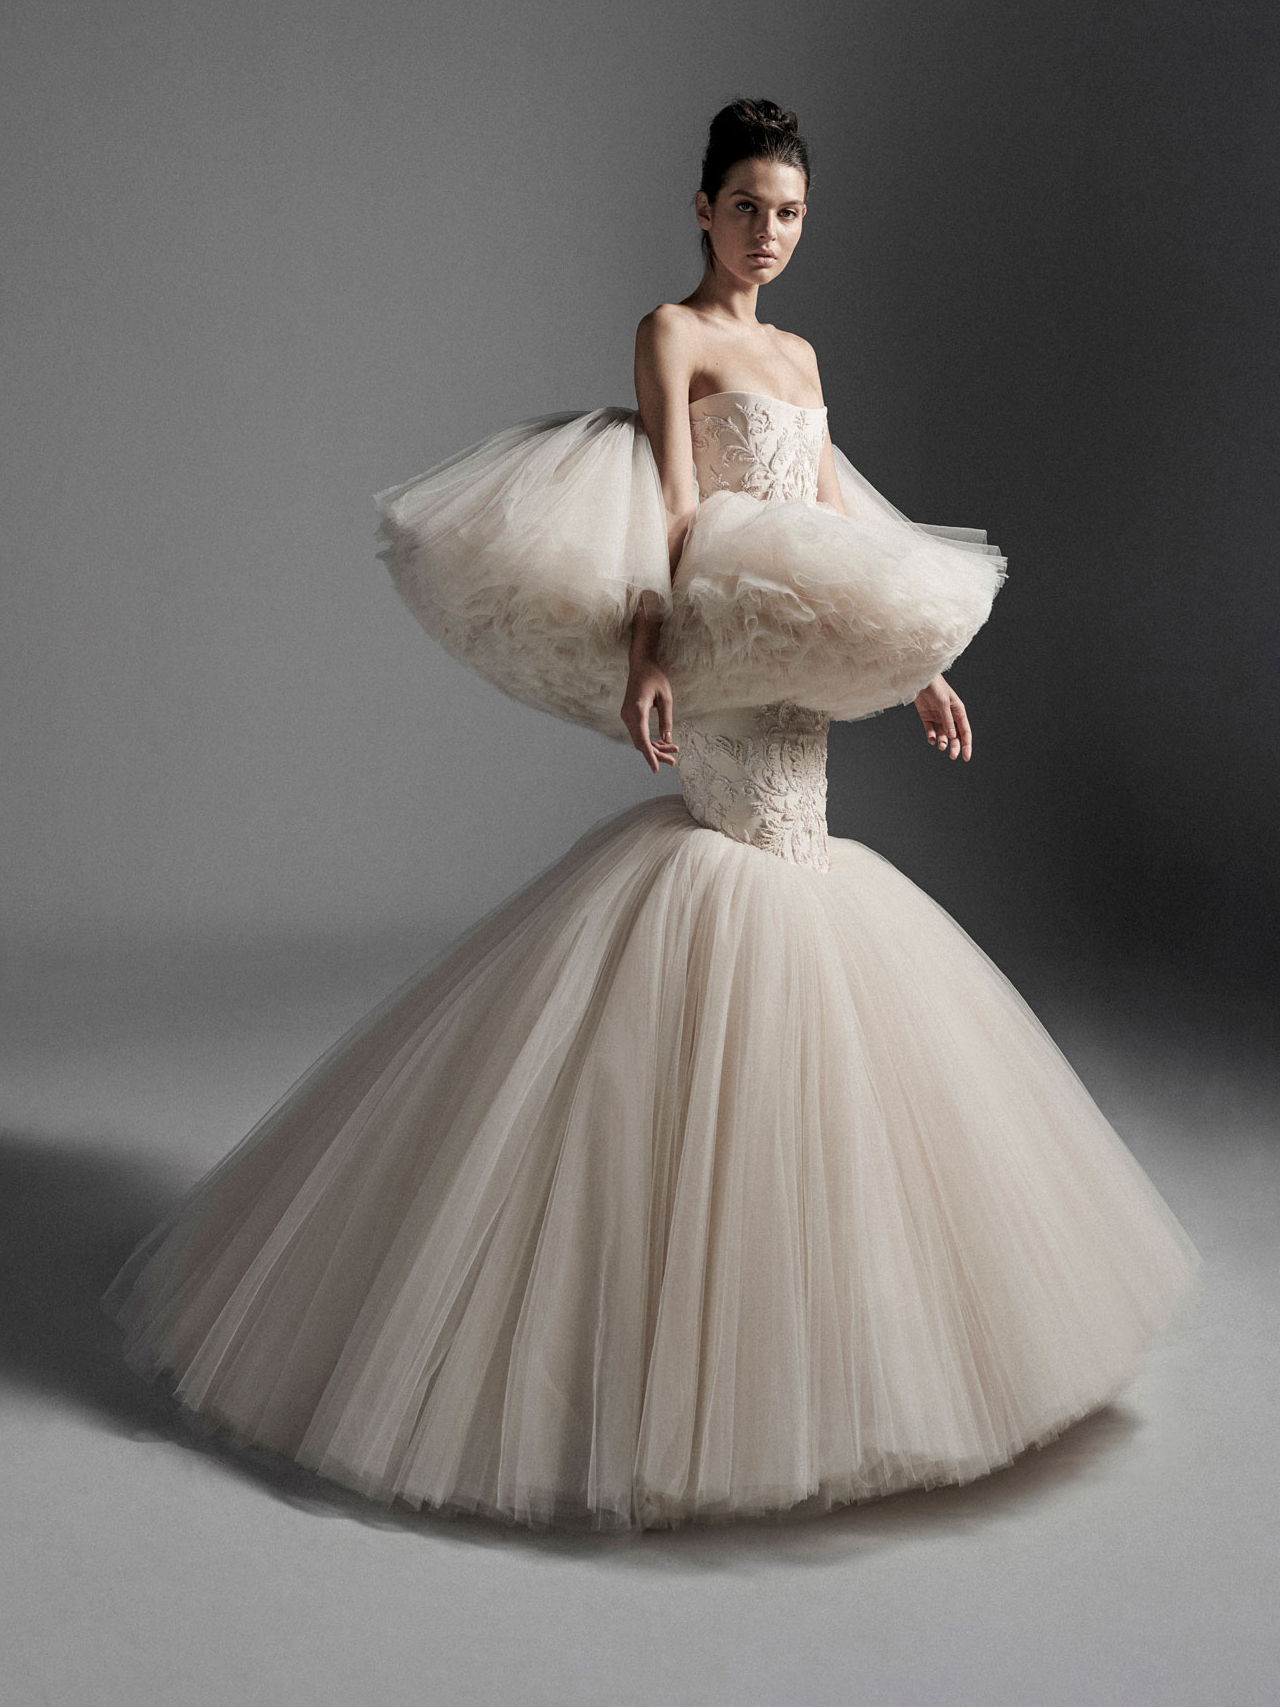 Look03 Inspirated By VI Krikor Jabotian Bridal Couture